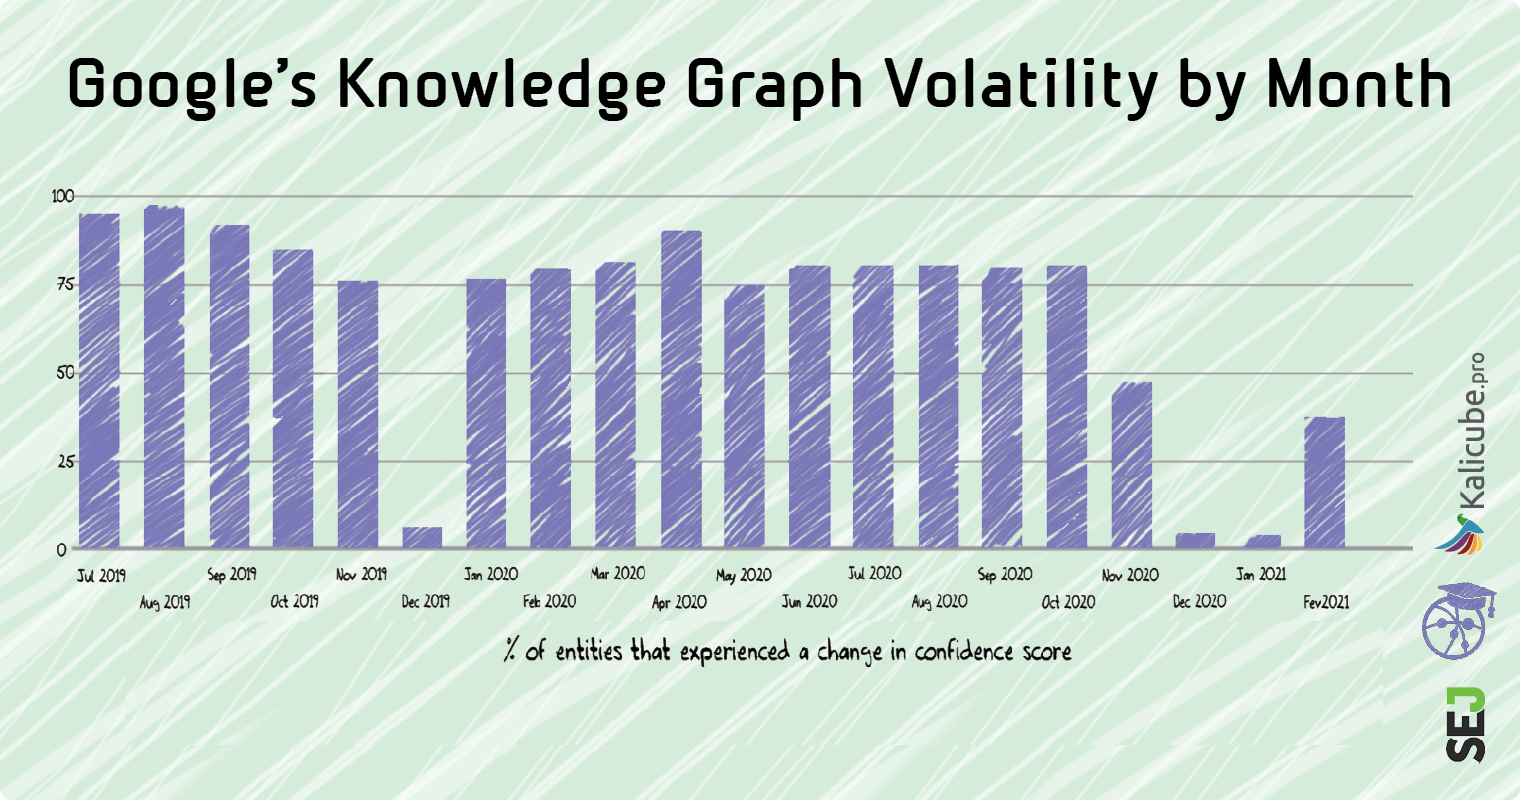 Google's Knowledge Graph Volatility by Month